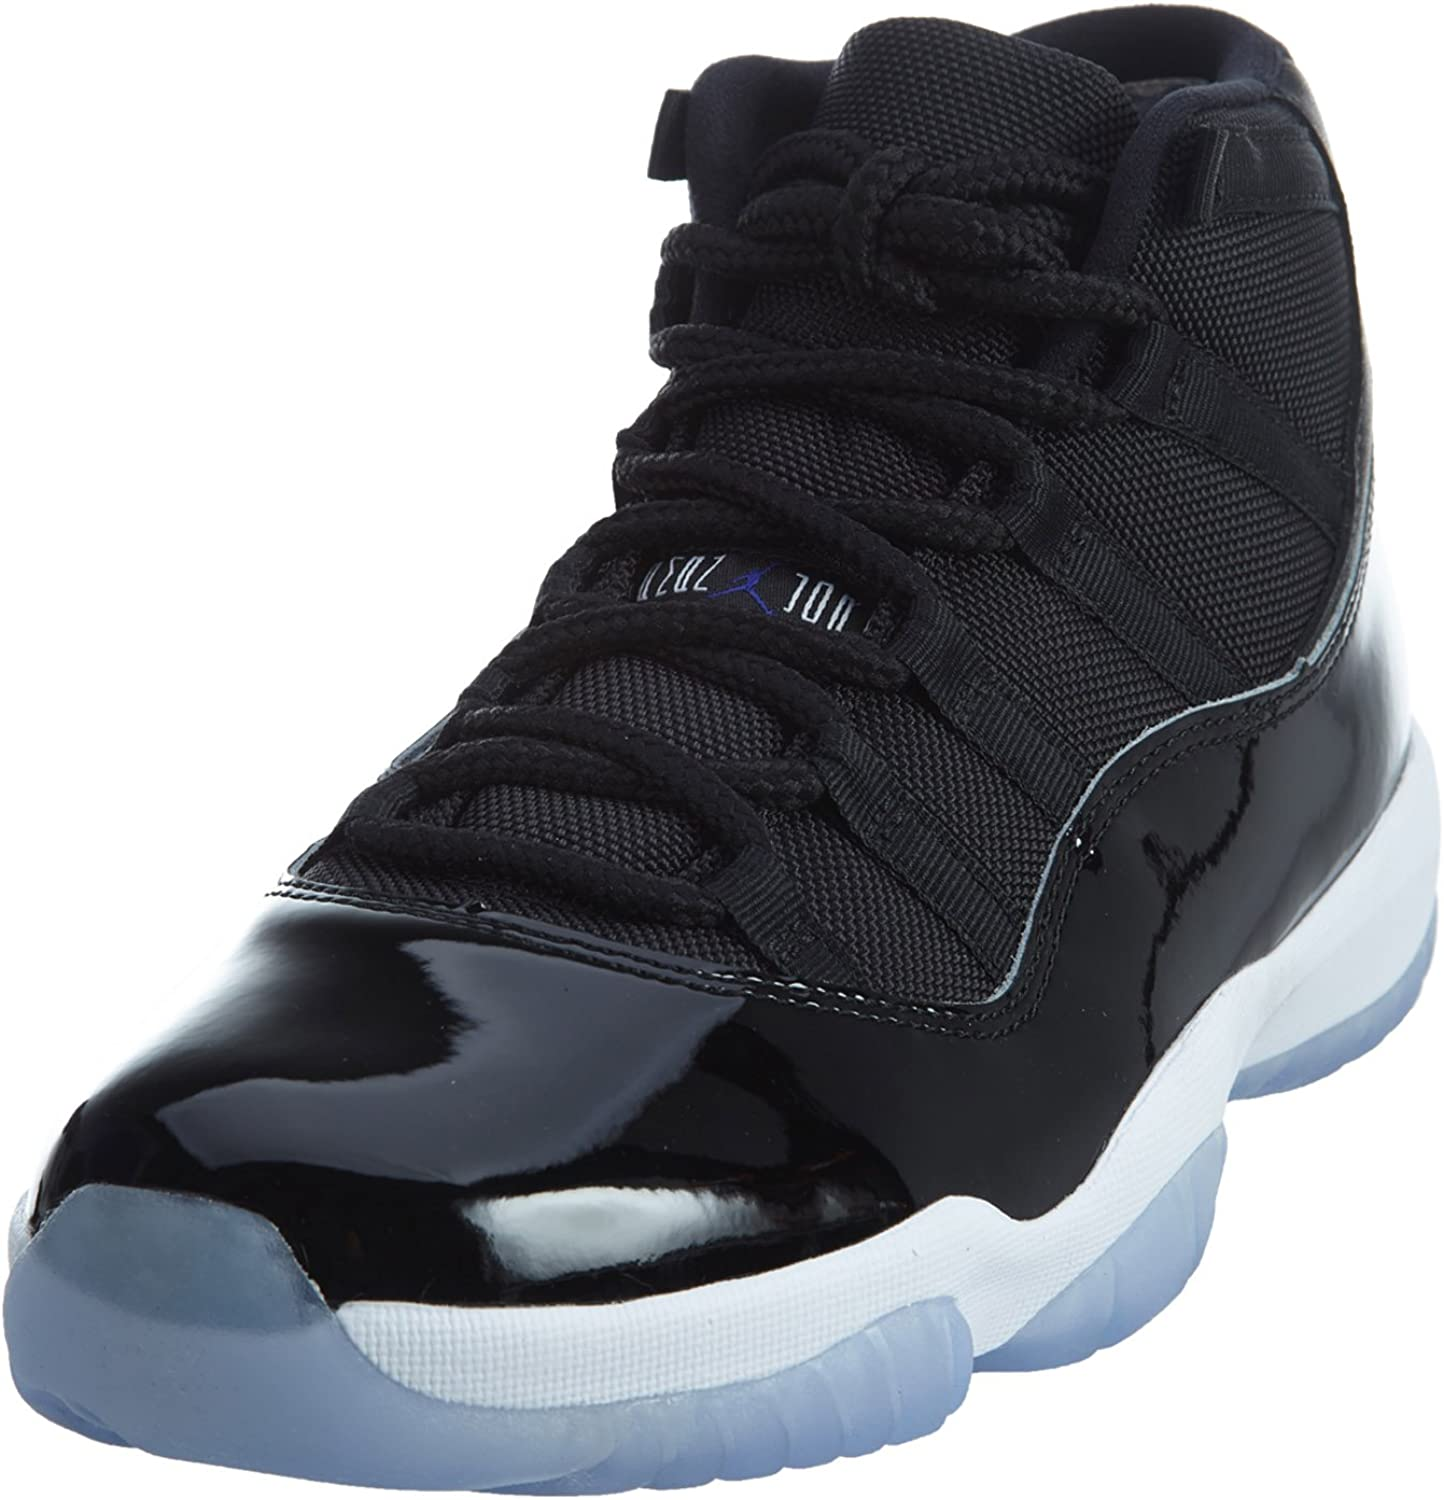 air jordan 11 retro space jam 2016